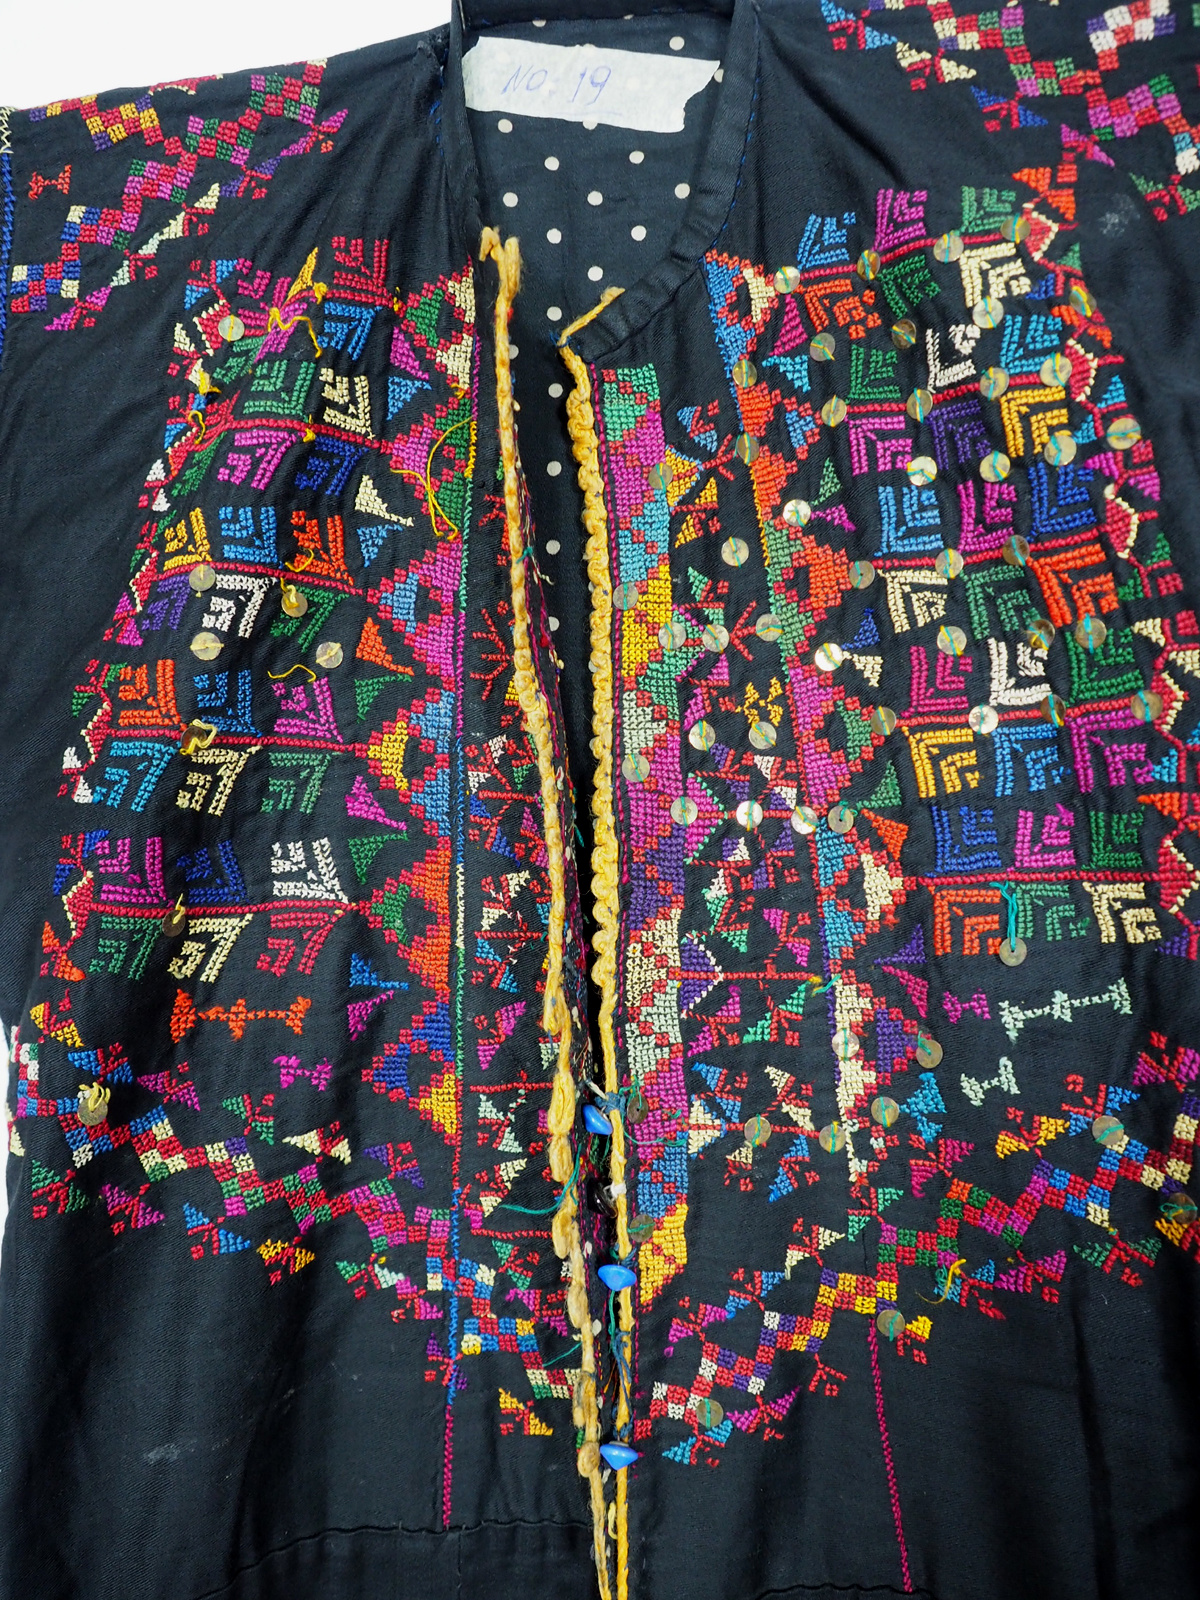 Palestinian girls embroidered ethnic dress No:19